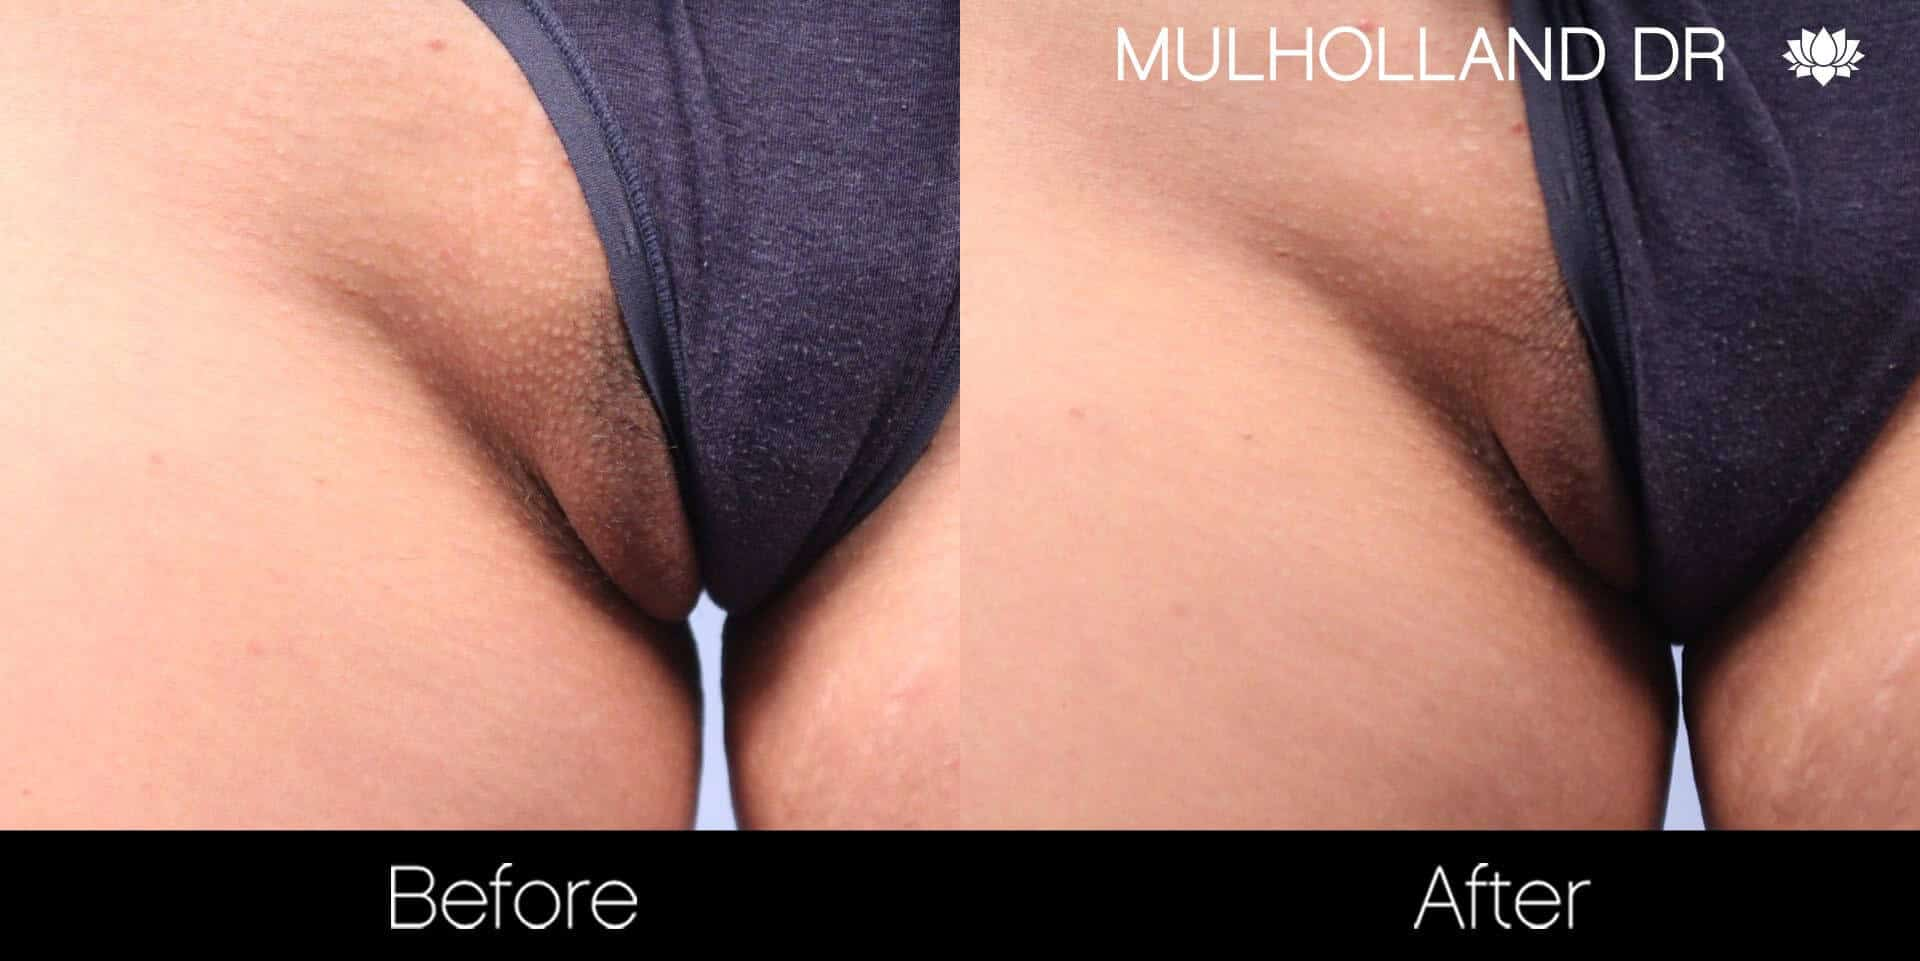 Bikini & Brazilian Laser Hair Removal - Patient Before and After Gallery – Photo 6